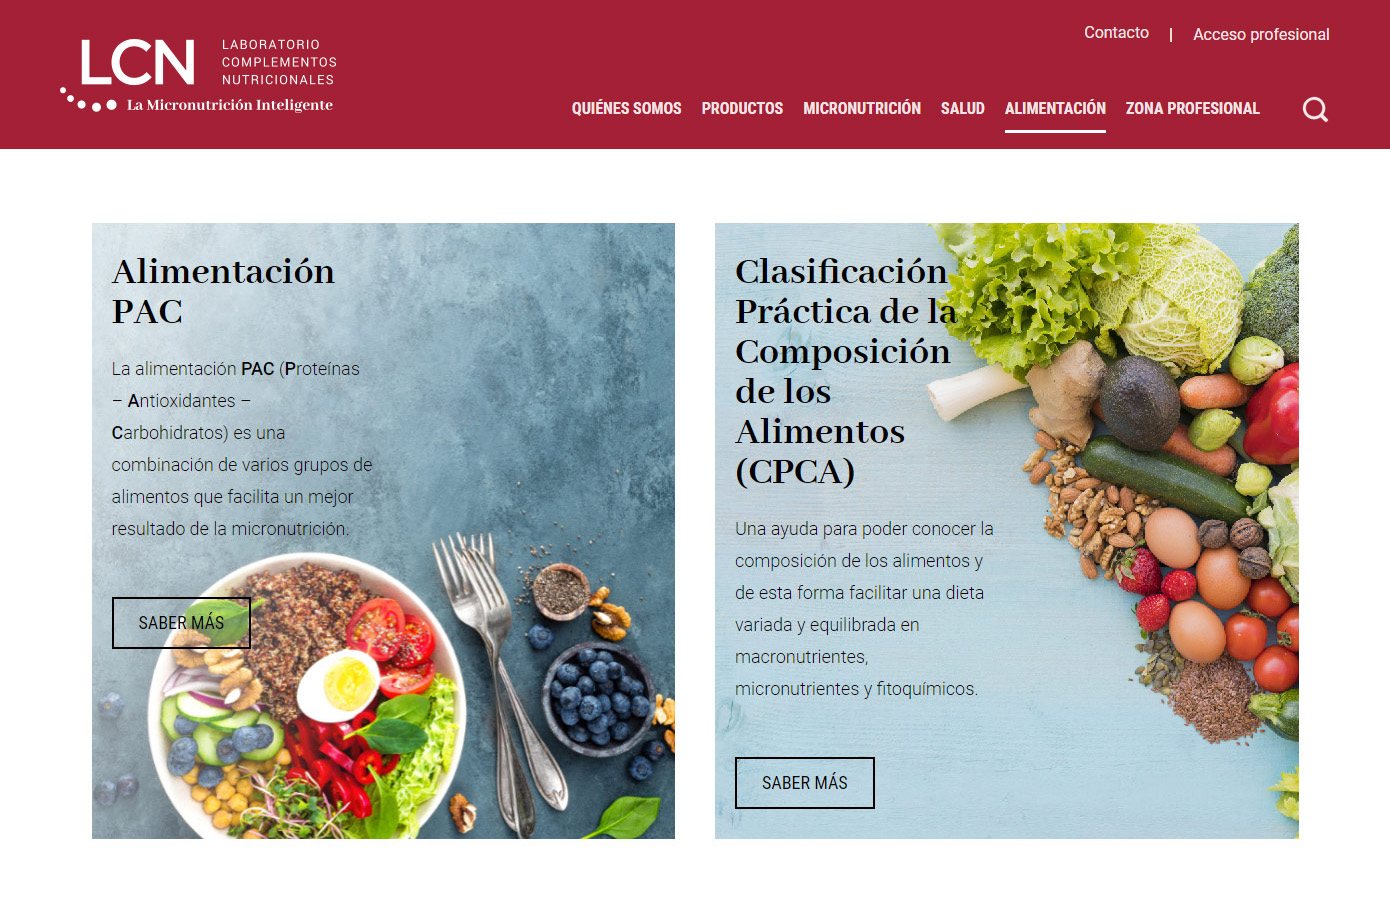 Laboratorio LCN - Nutrition